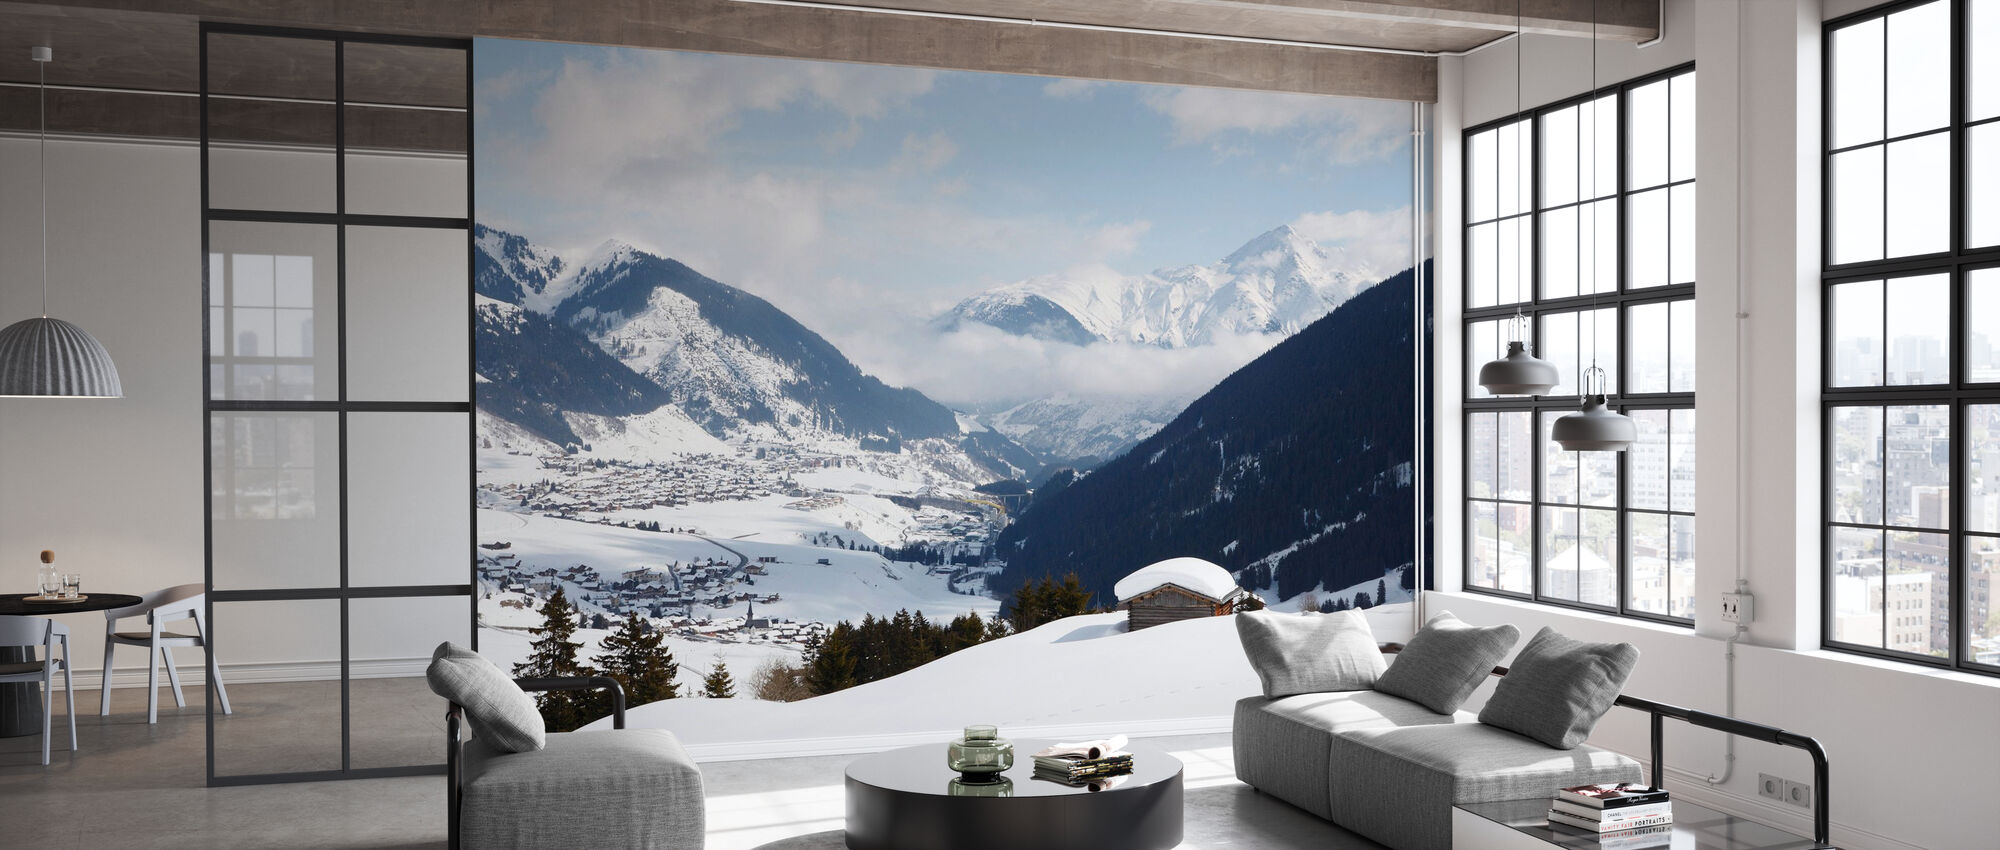 Andermatt, Switzerland - Wallpaper - Office